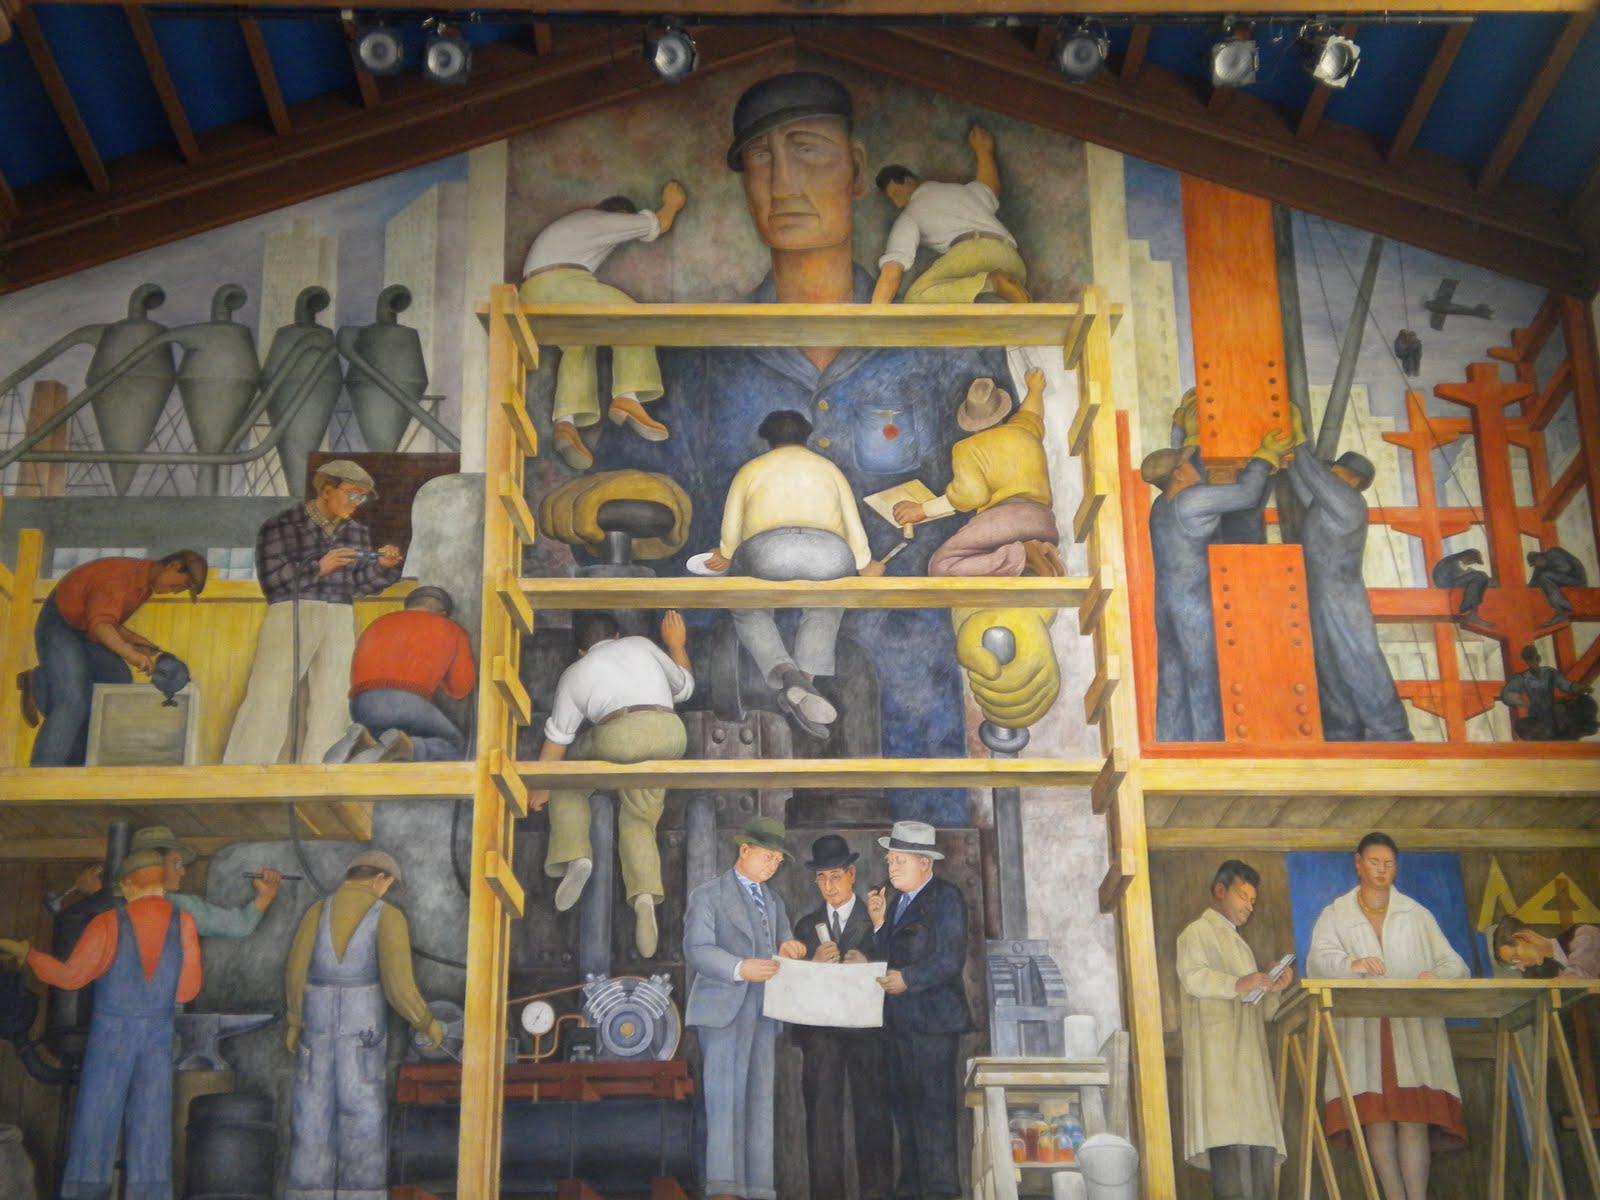 Murals diego rivera san francisco usa art for Diego rivera mural in san francisco